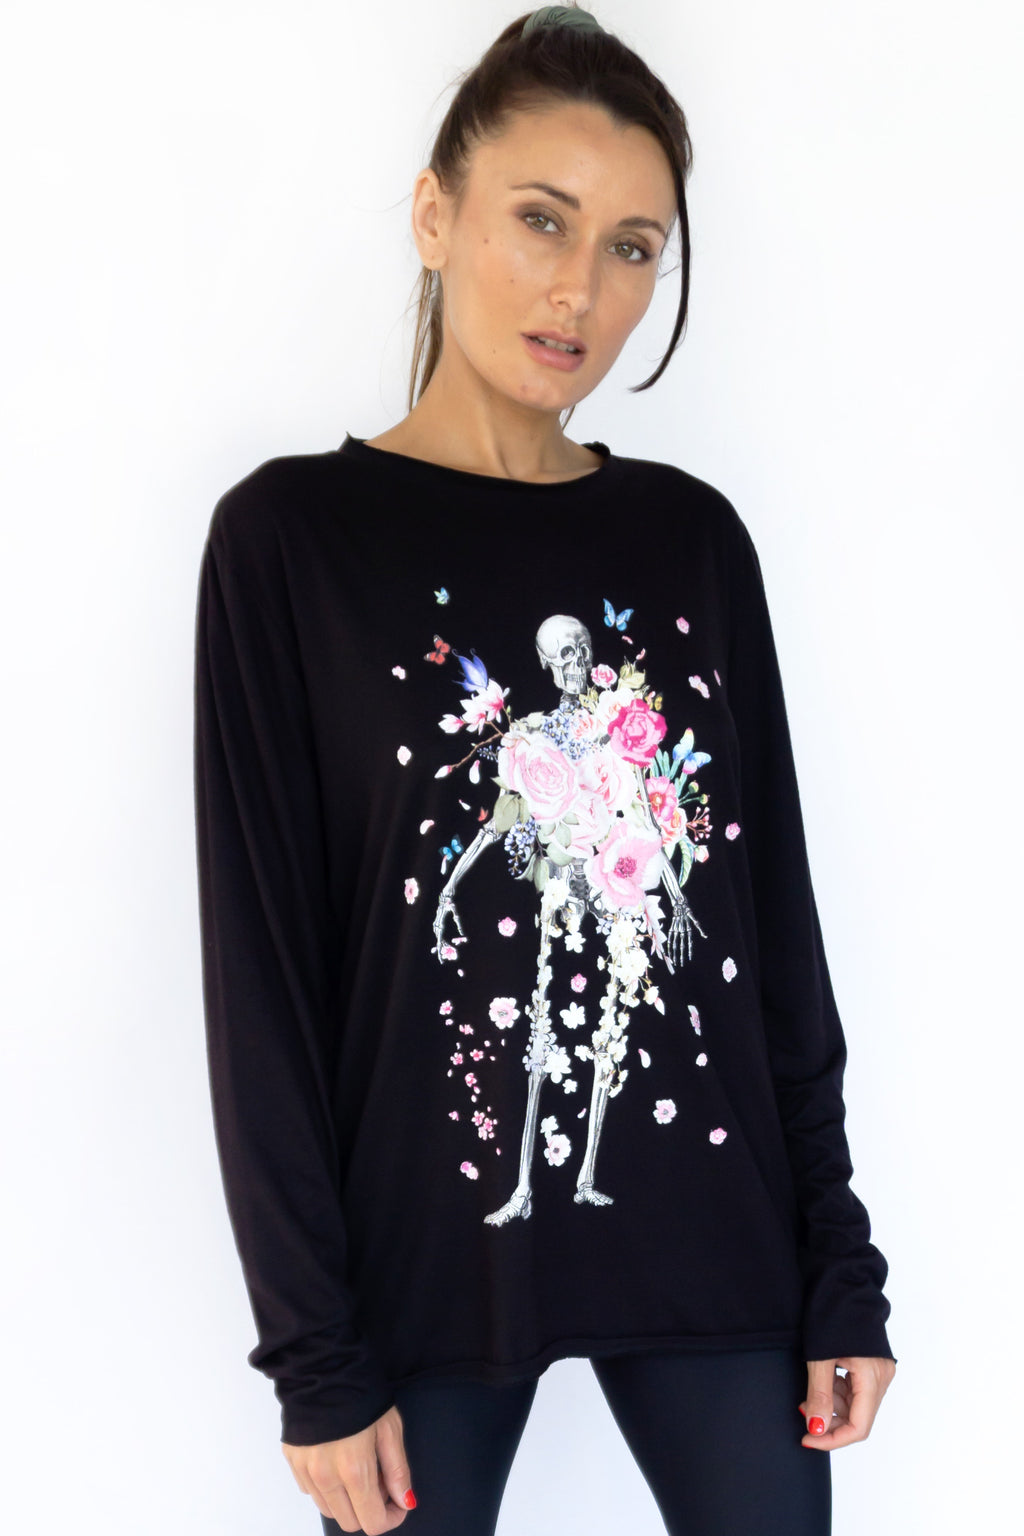 PRE-ORDER - 'SKELETON FLOWER' LONG SLEEVE TEE - BLACK